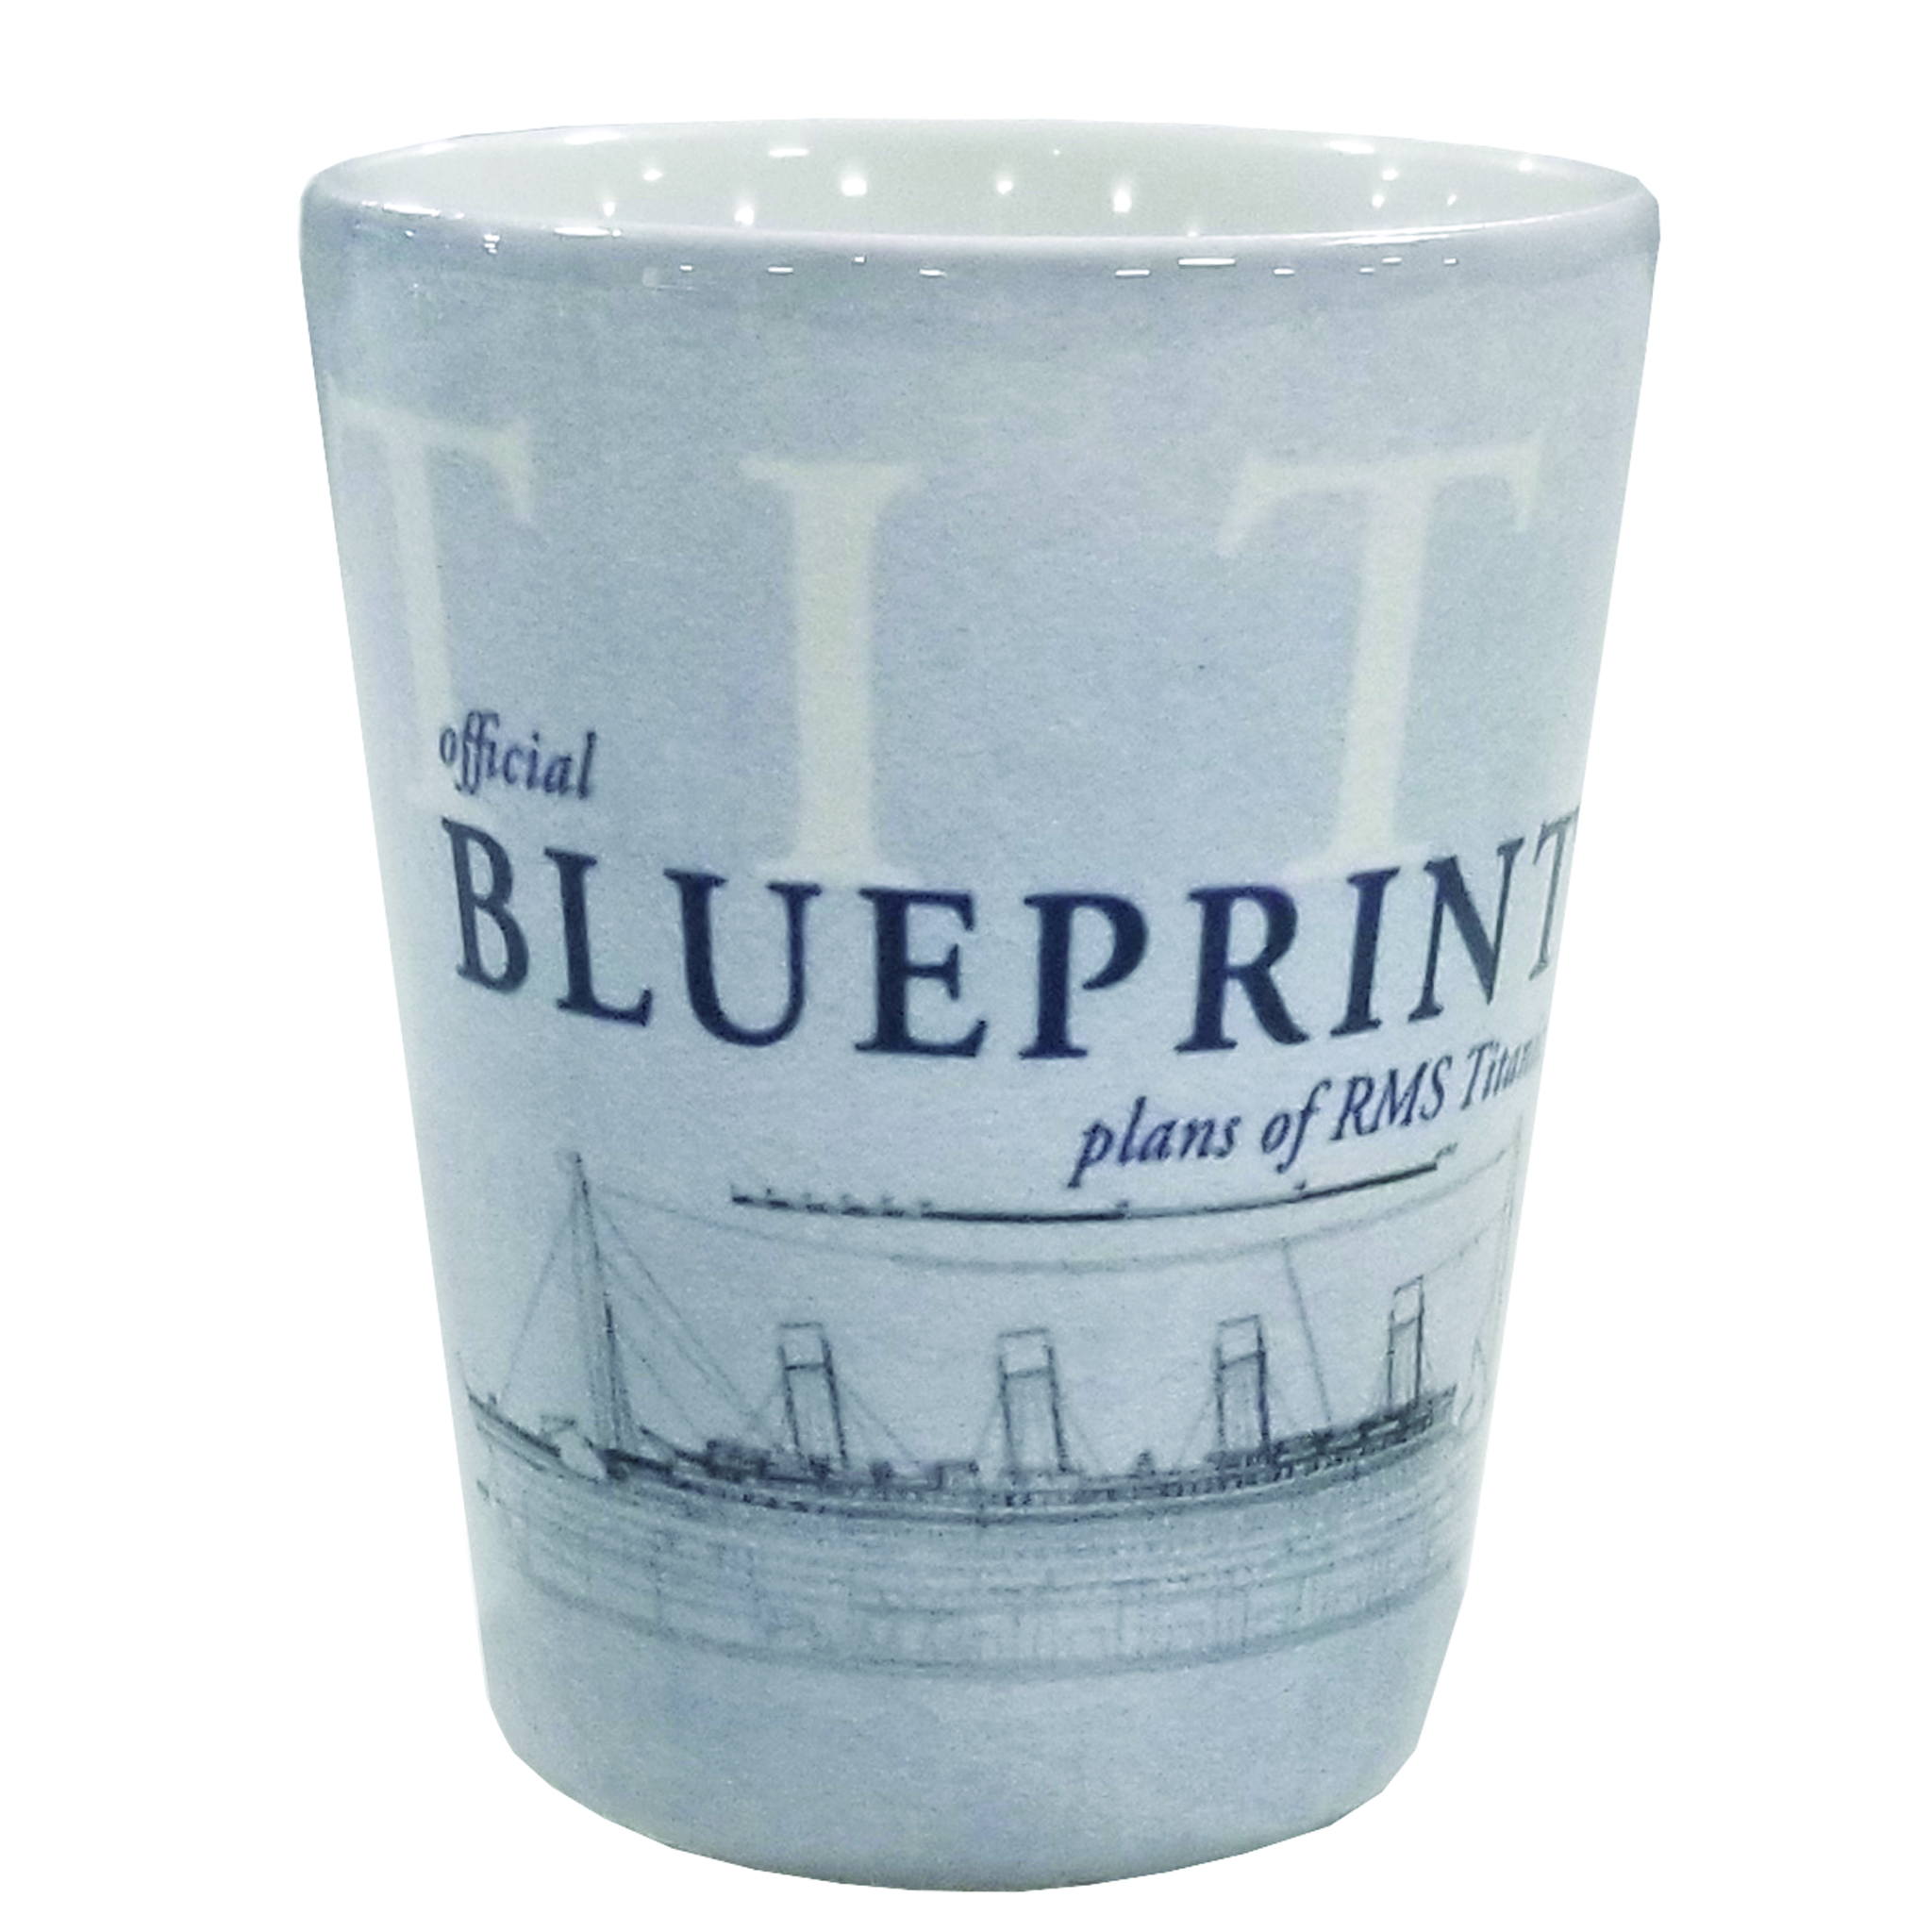 Blue print ceramic shotglass